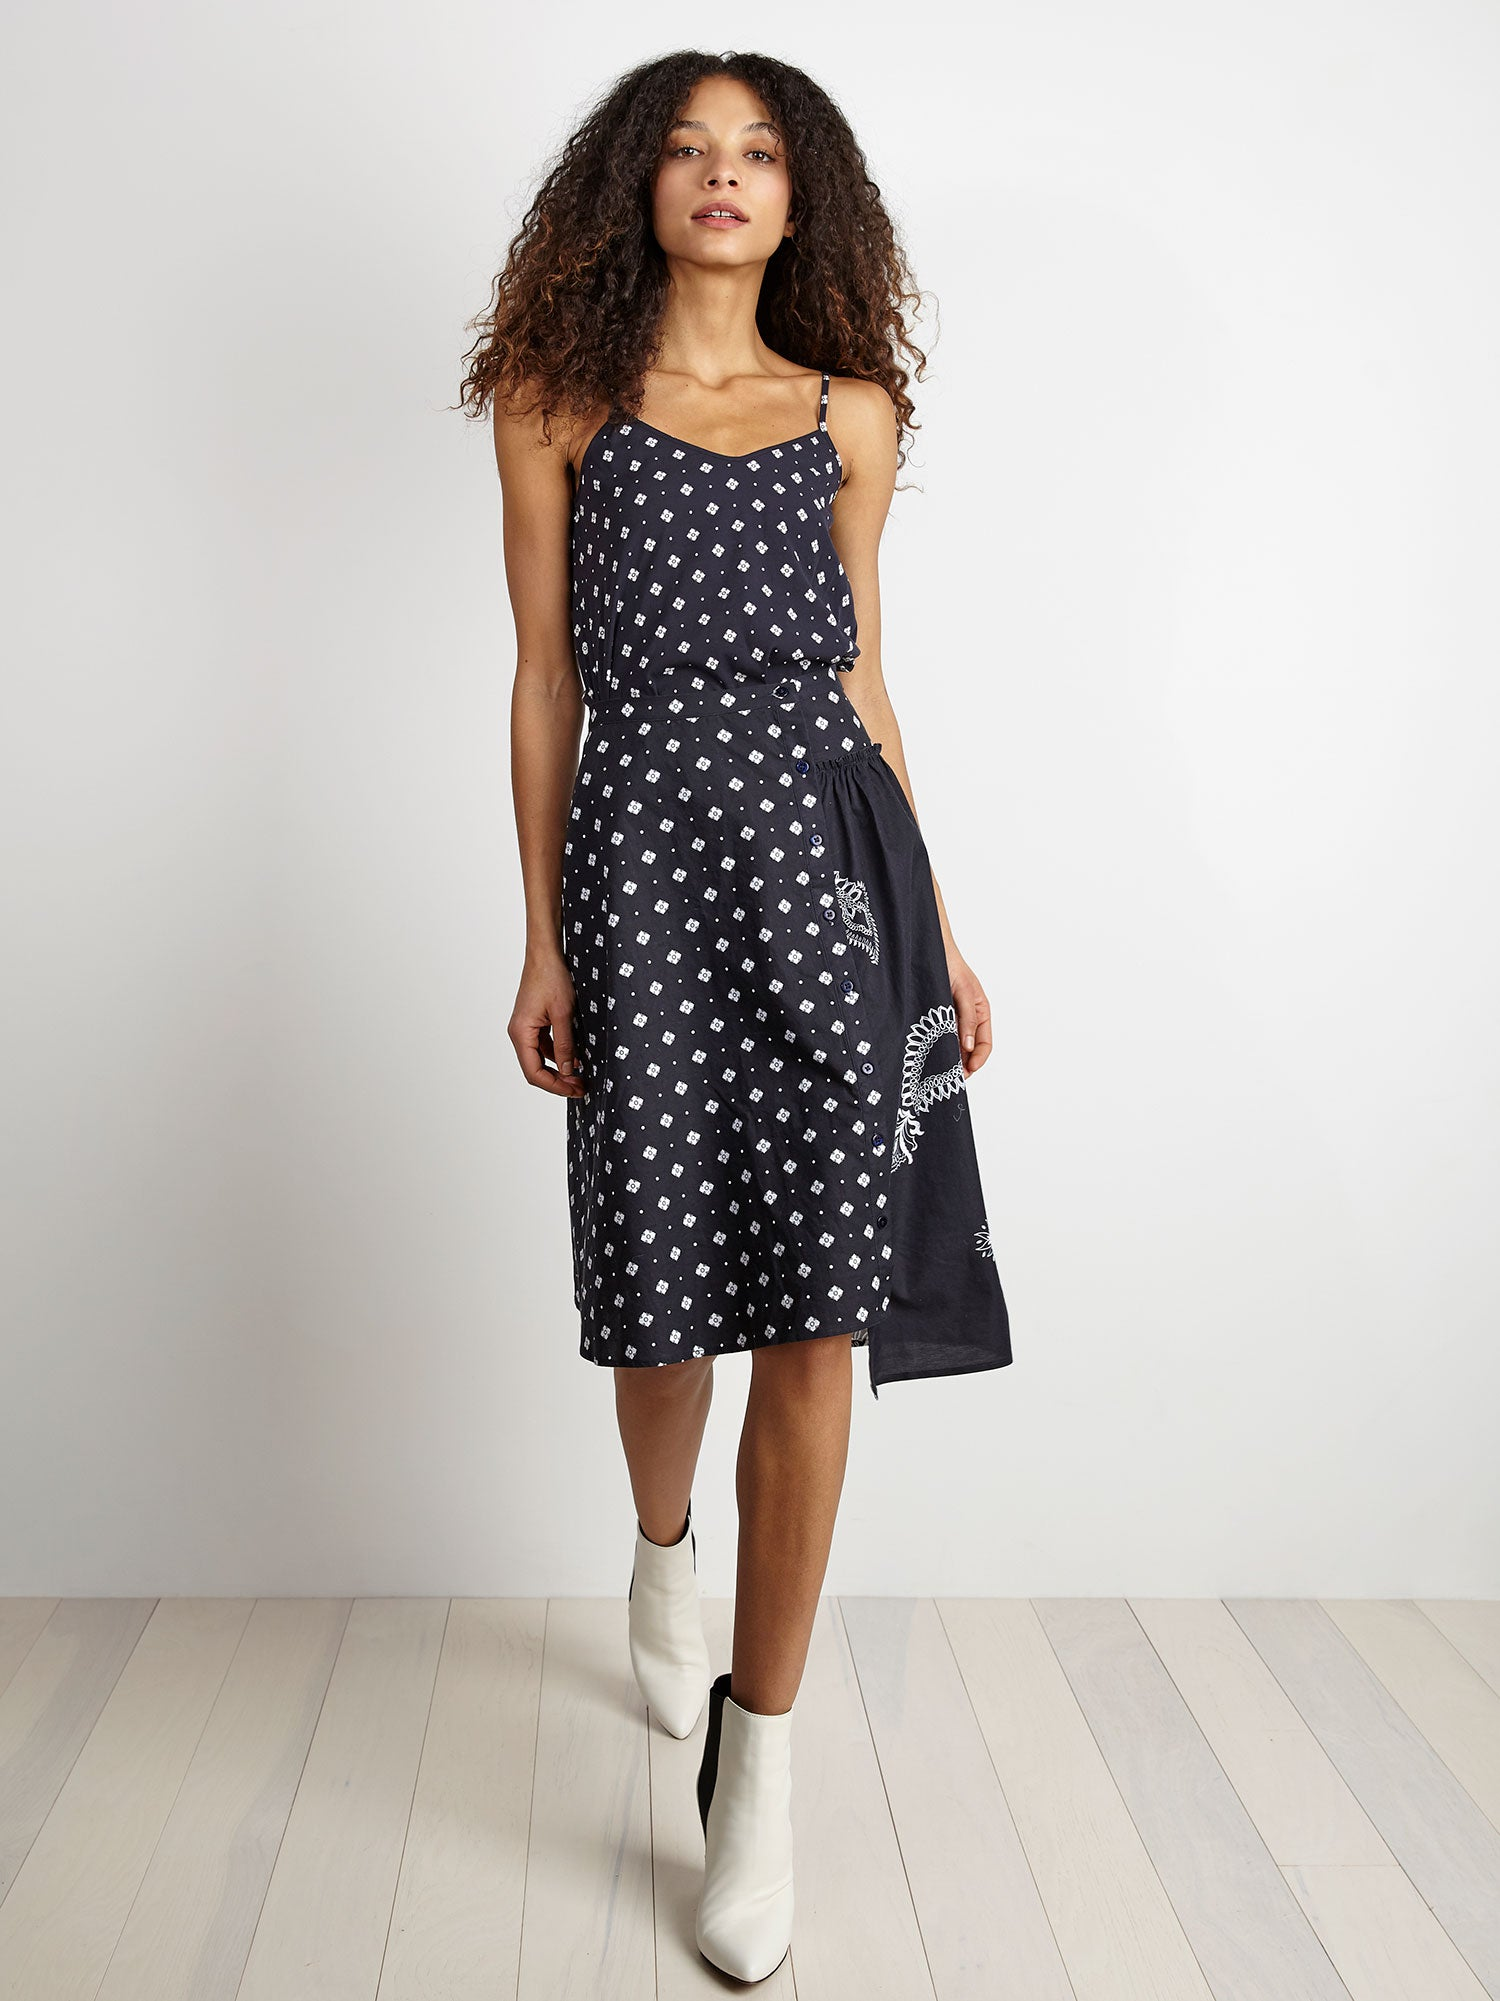 button-front full skirt with asymmetrical gathering in navy jewel print